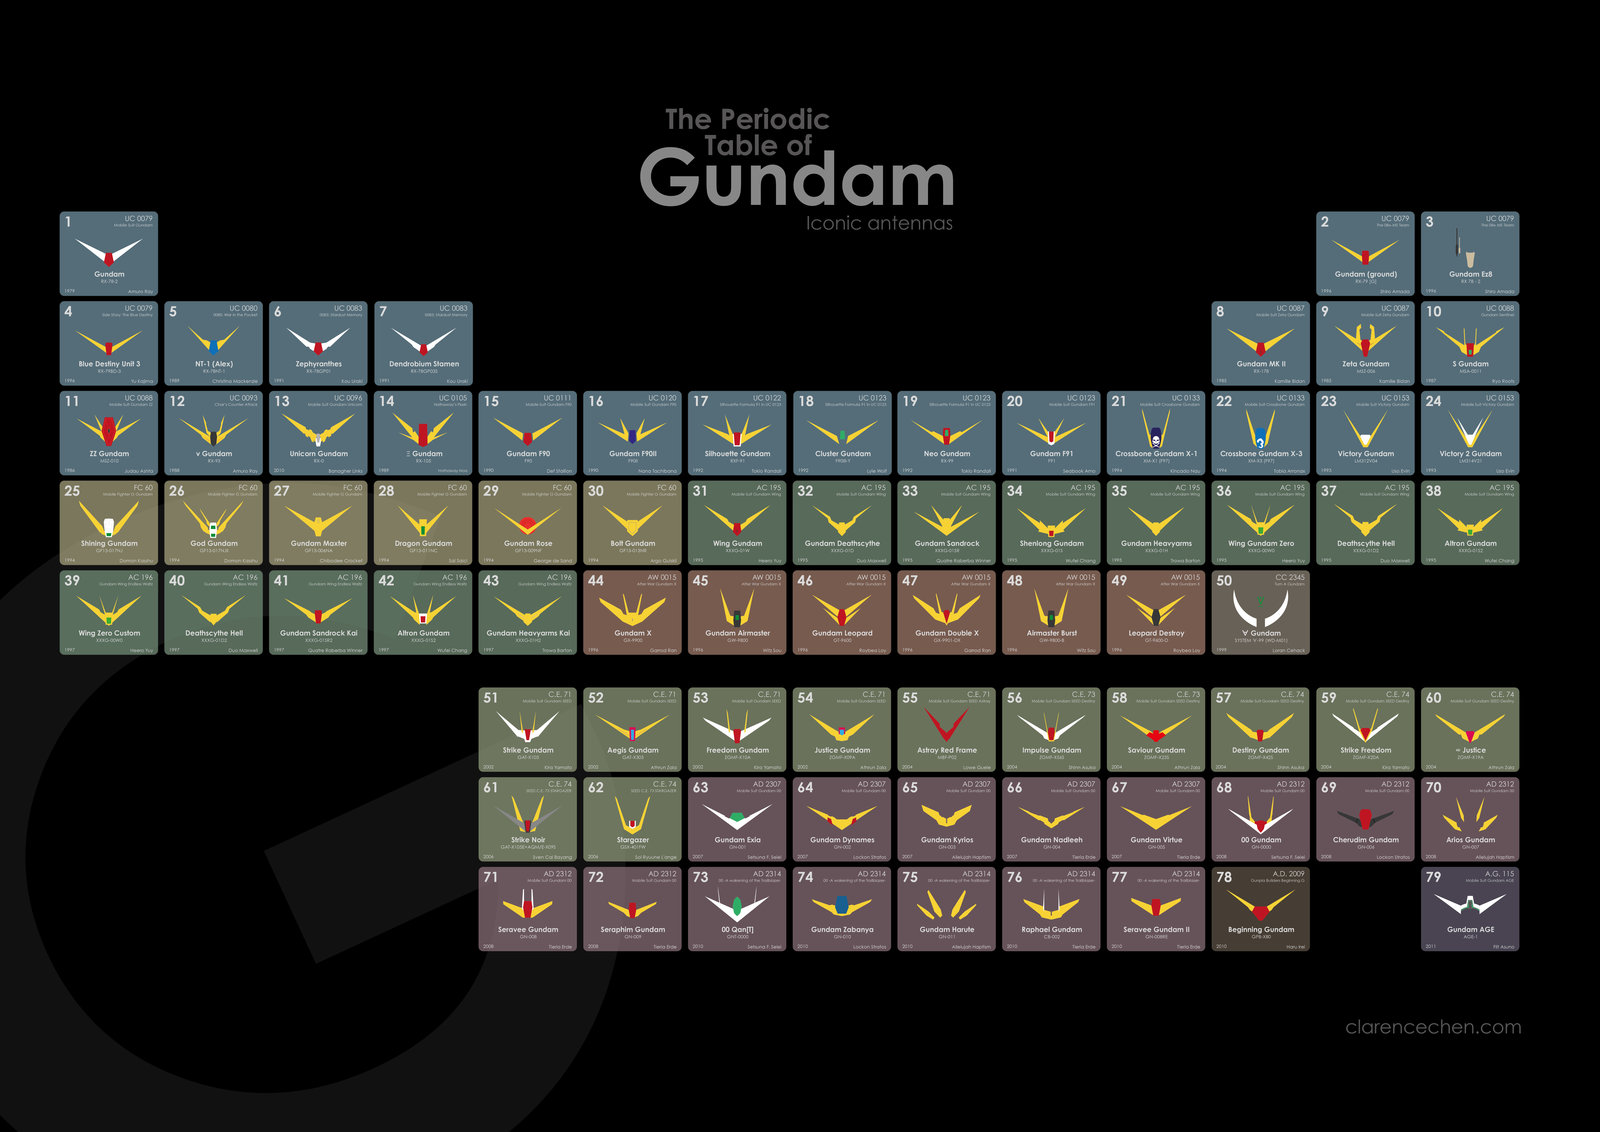 Gundam periodic table parodies know your meme the periodic table of gundam lconic antennas gundam ground gundom ex8 10 blue destiny urtaz Gallery